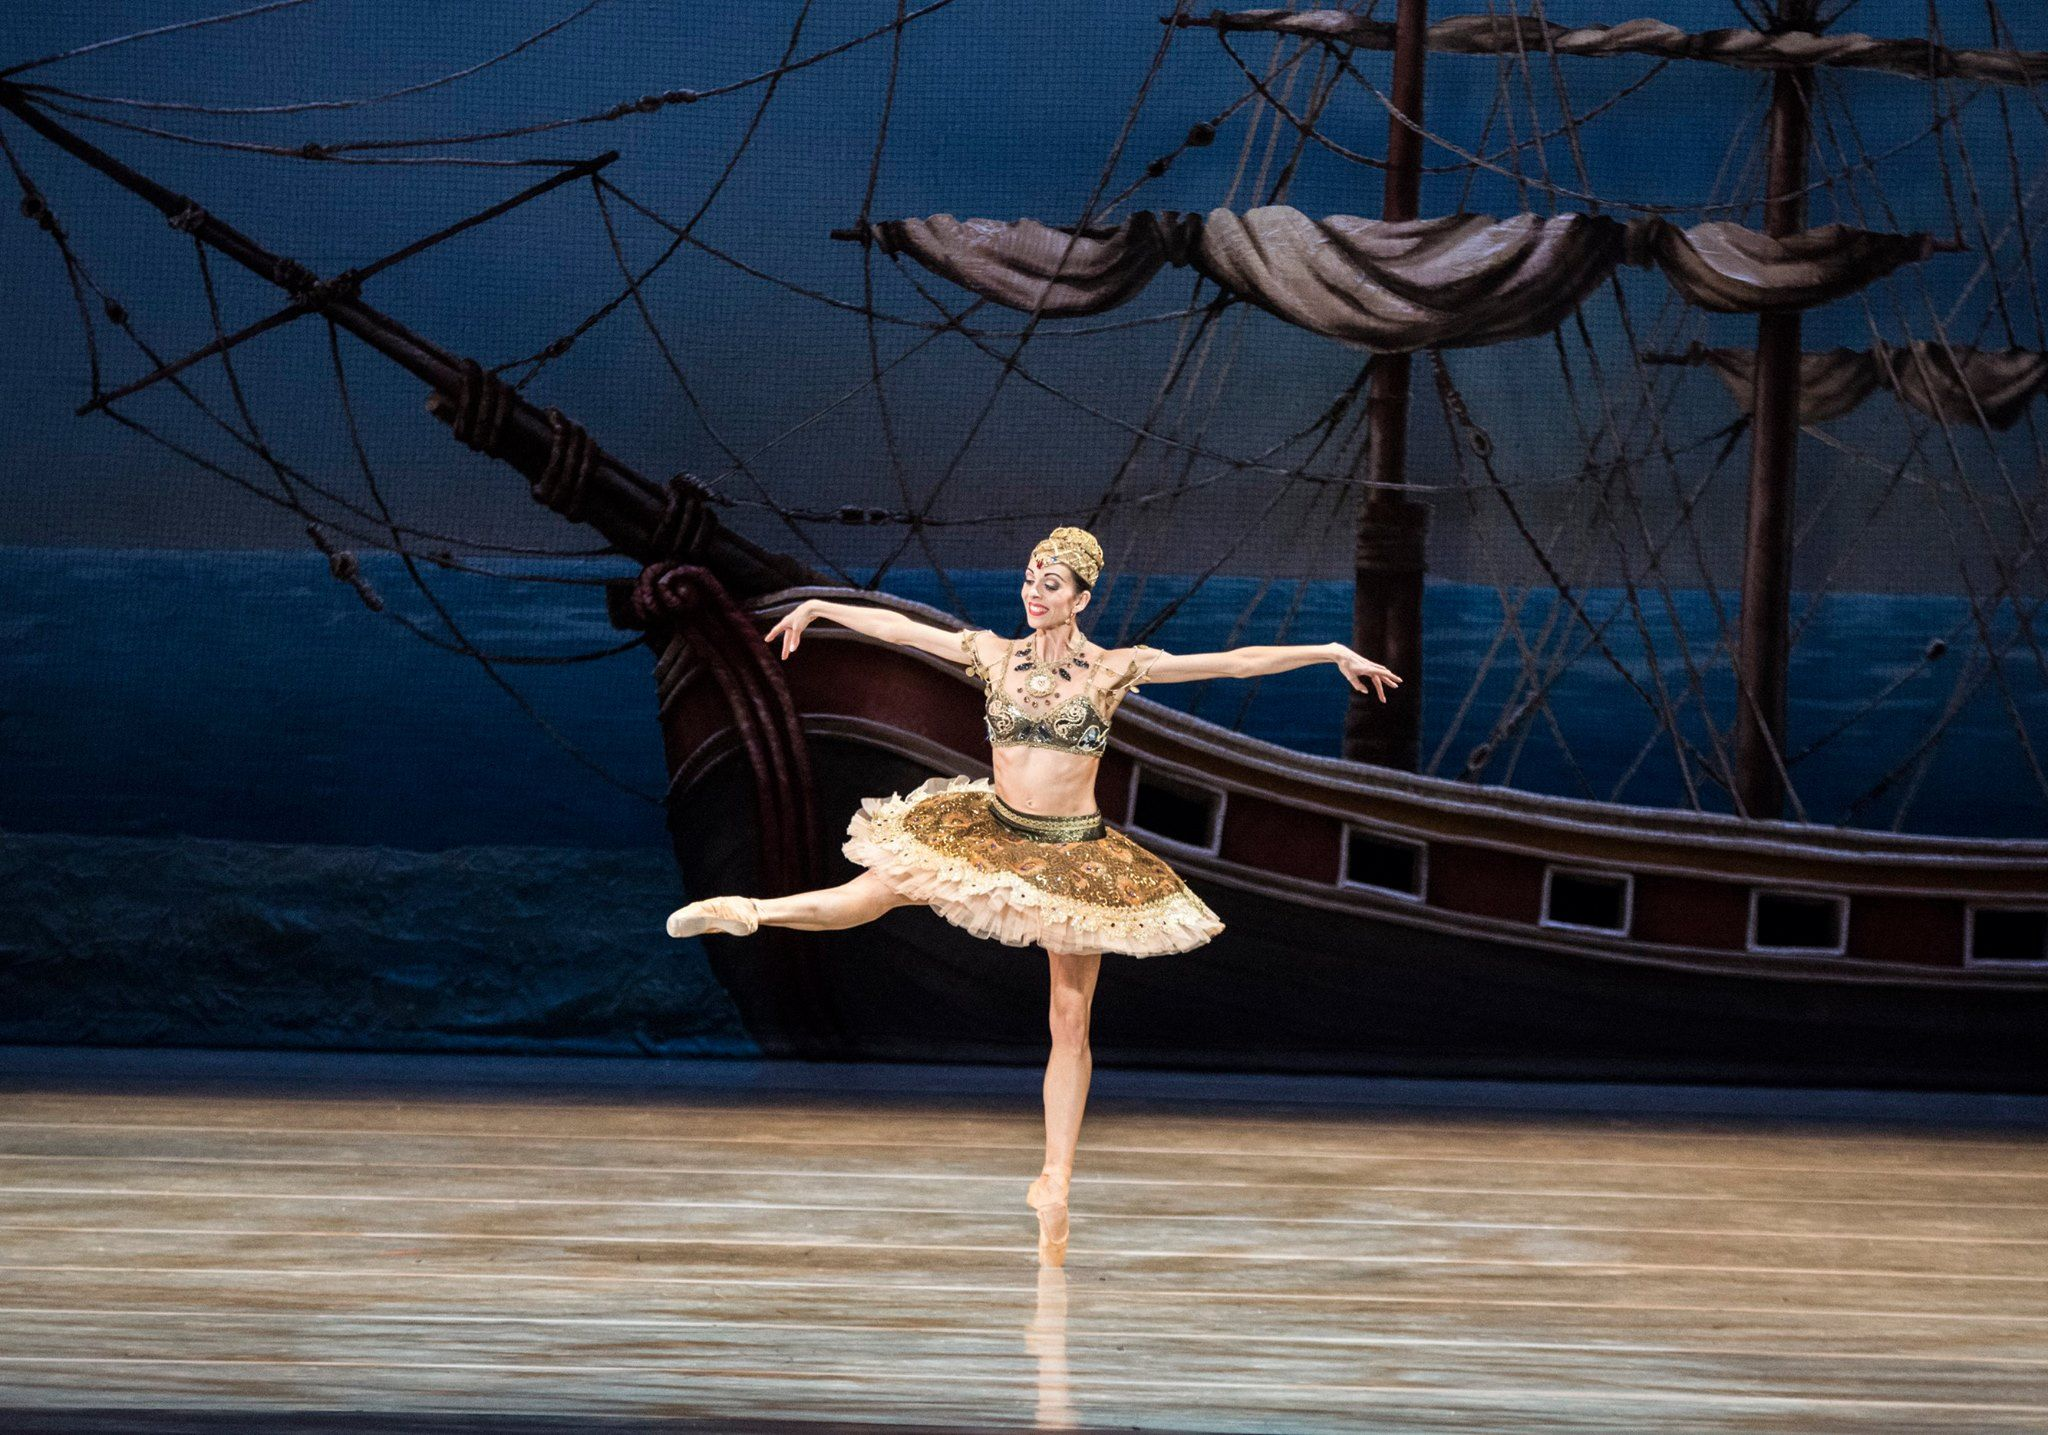 Pennsylvania Ballet Principal Dancer Amy Aldridge in 'Le Corsaire' - Photo by Arian Molina Soca